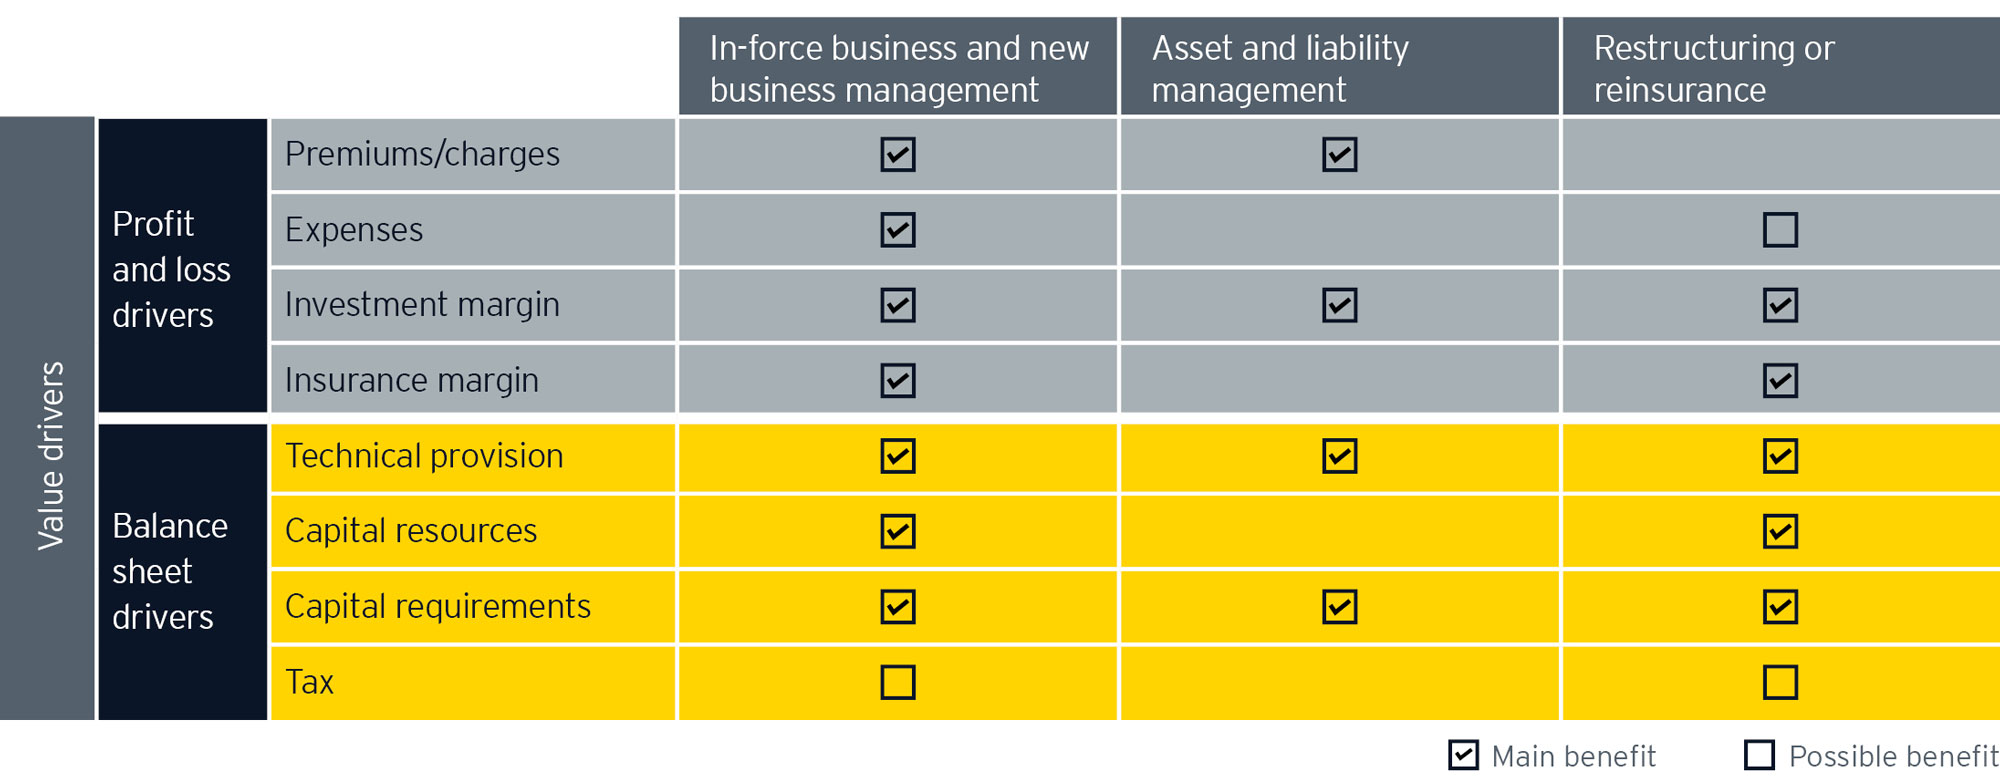 EY - Do regulatory detours disrupt or build your insurance future?